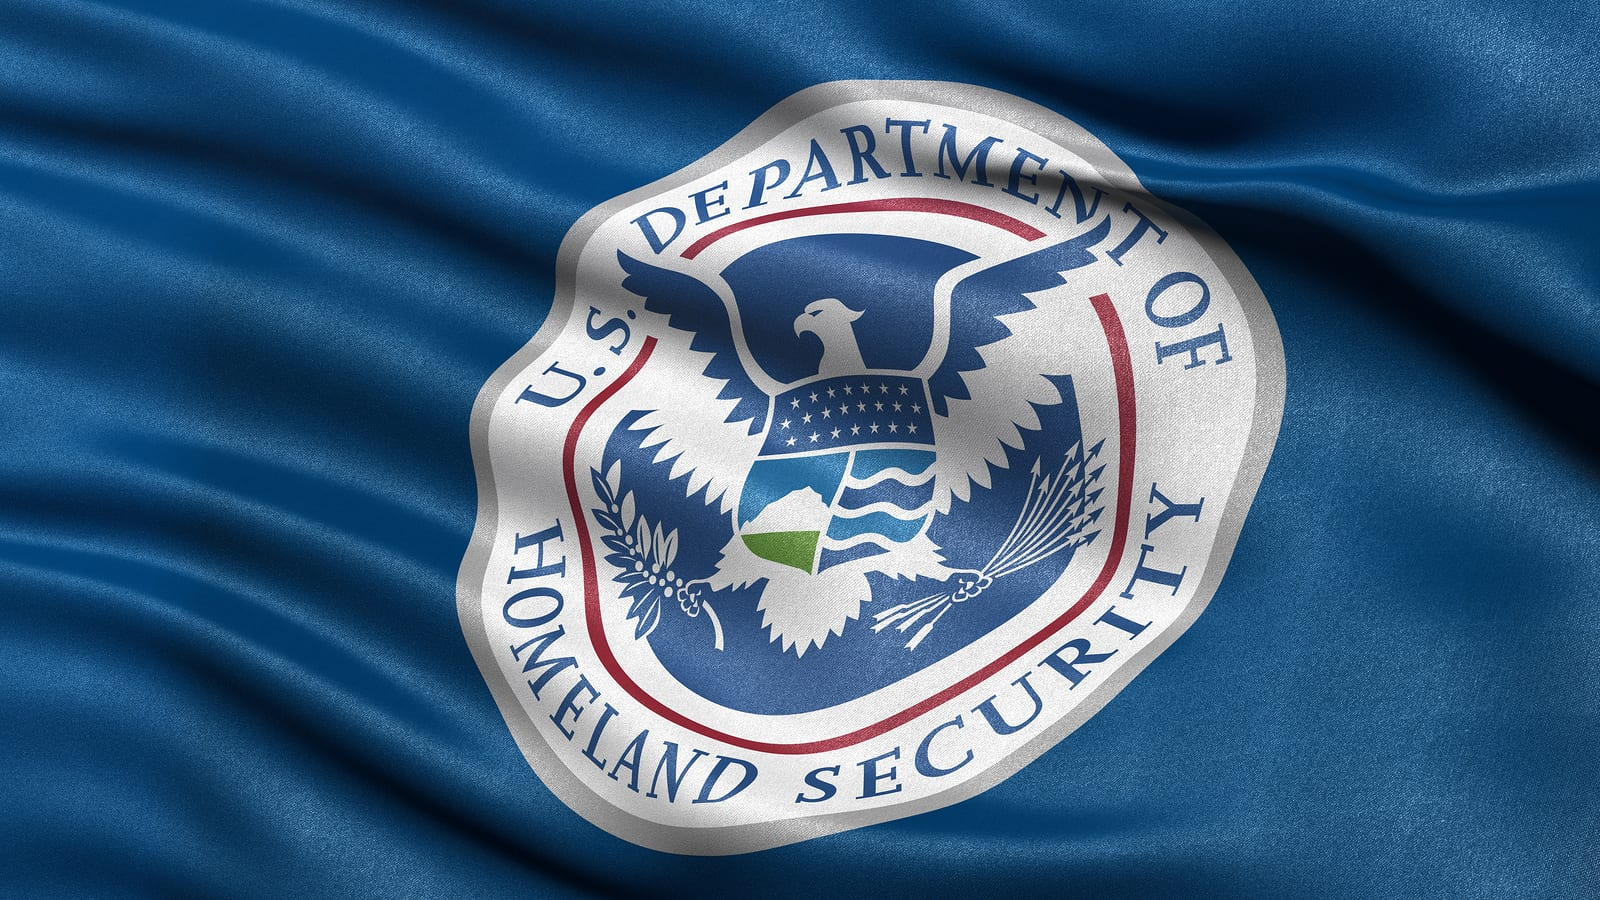 Homeland Security News: Readout from Secretary Nielsen's Trip to Texas